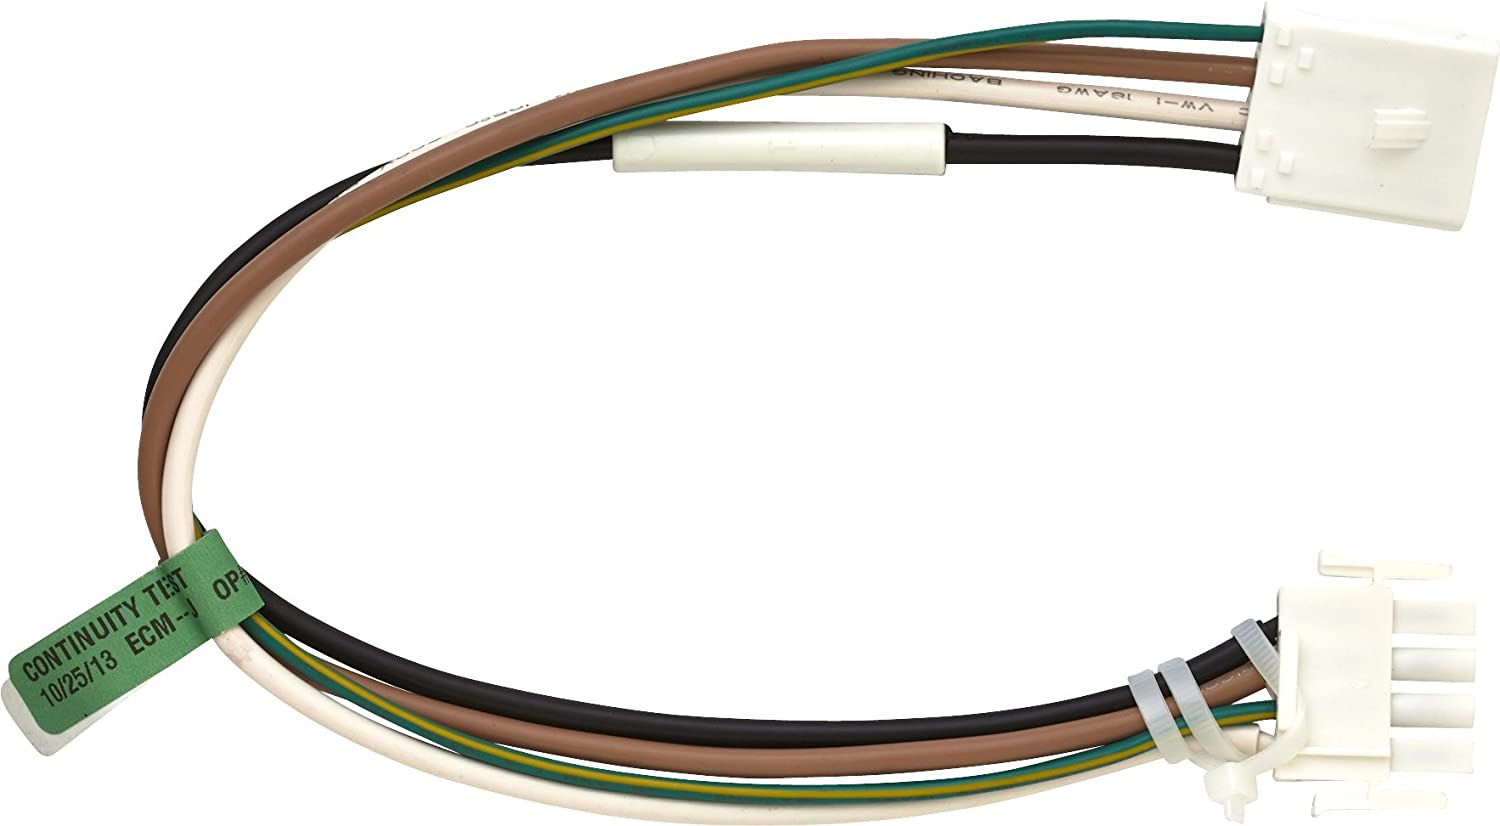 6113euQ4aCL._SL1500_ amazon com whirlpool d7813010 harness icemaker home improvement ice maker wiring harness at mifinder.co